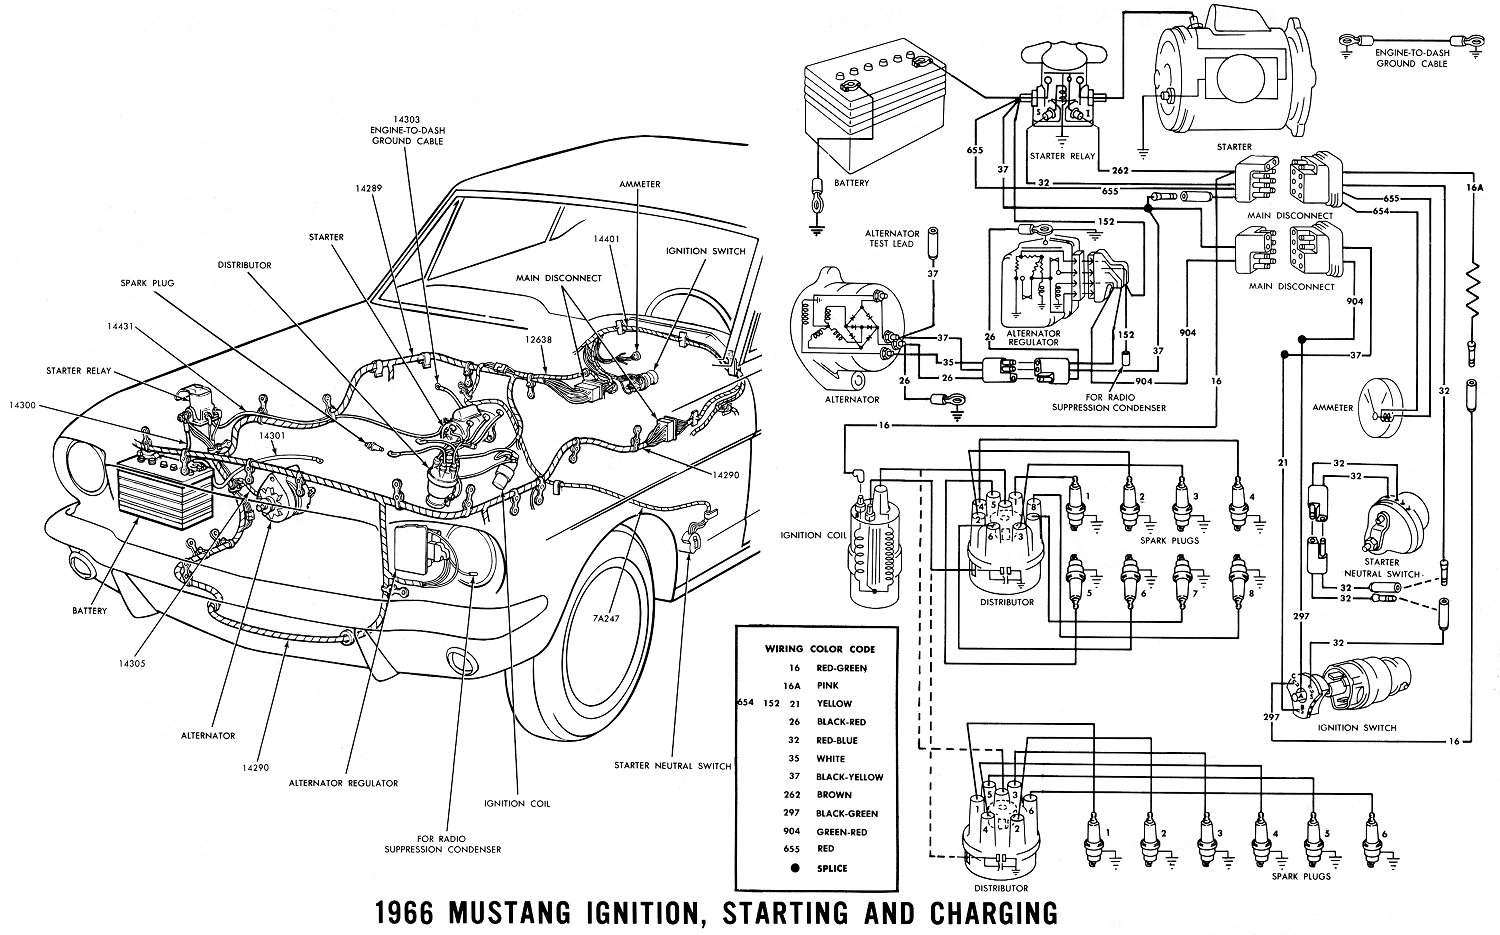 66ignit 1966 mustang wiring diagrams average joe restoration 1967 Mustang Wiring Harness Pigtail Diagram at webbmarketing.co